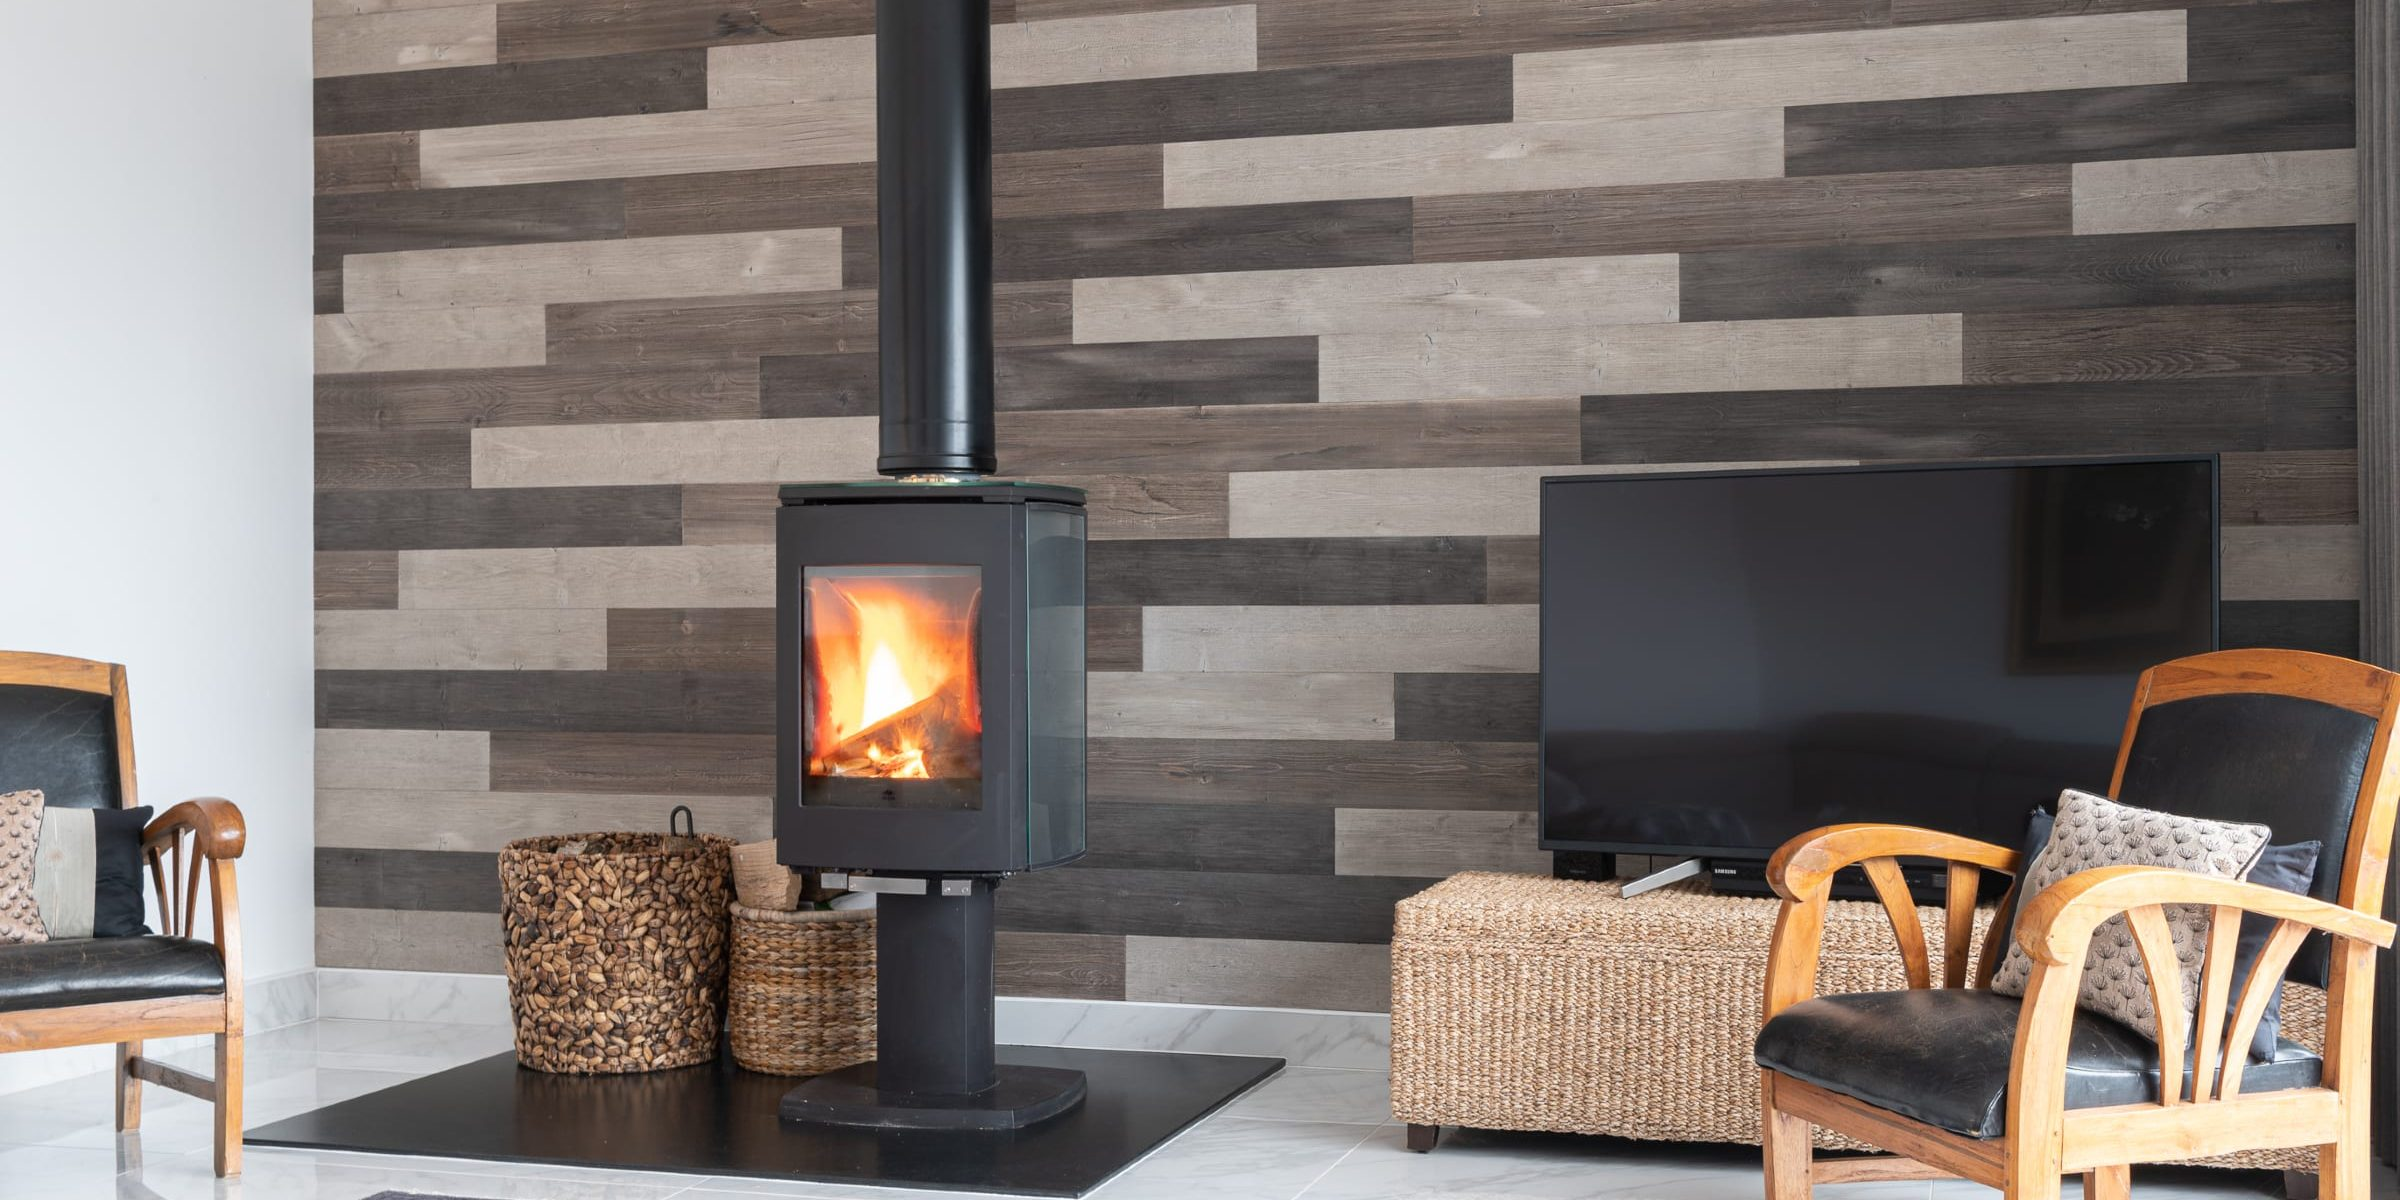 Wood Feature Wall Design With Panneau Wooden Wall Panels In Surrey